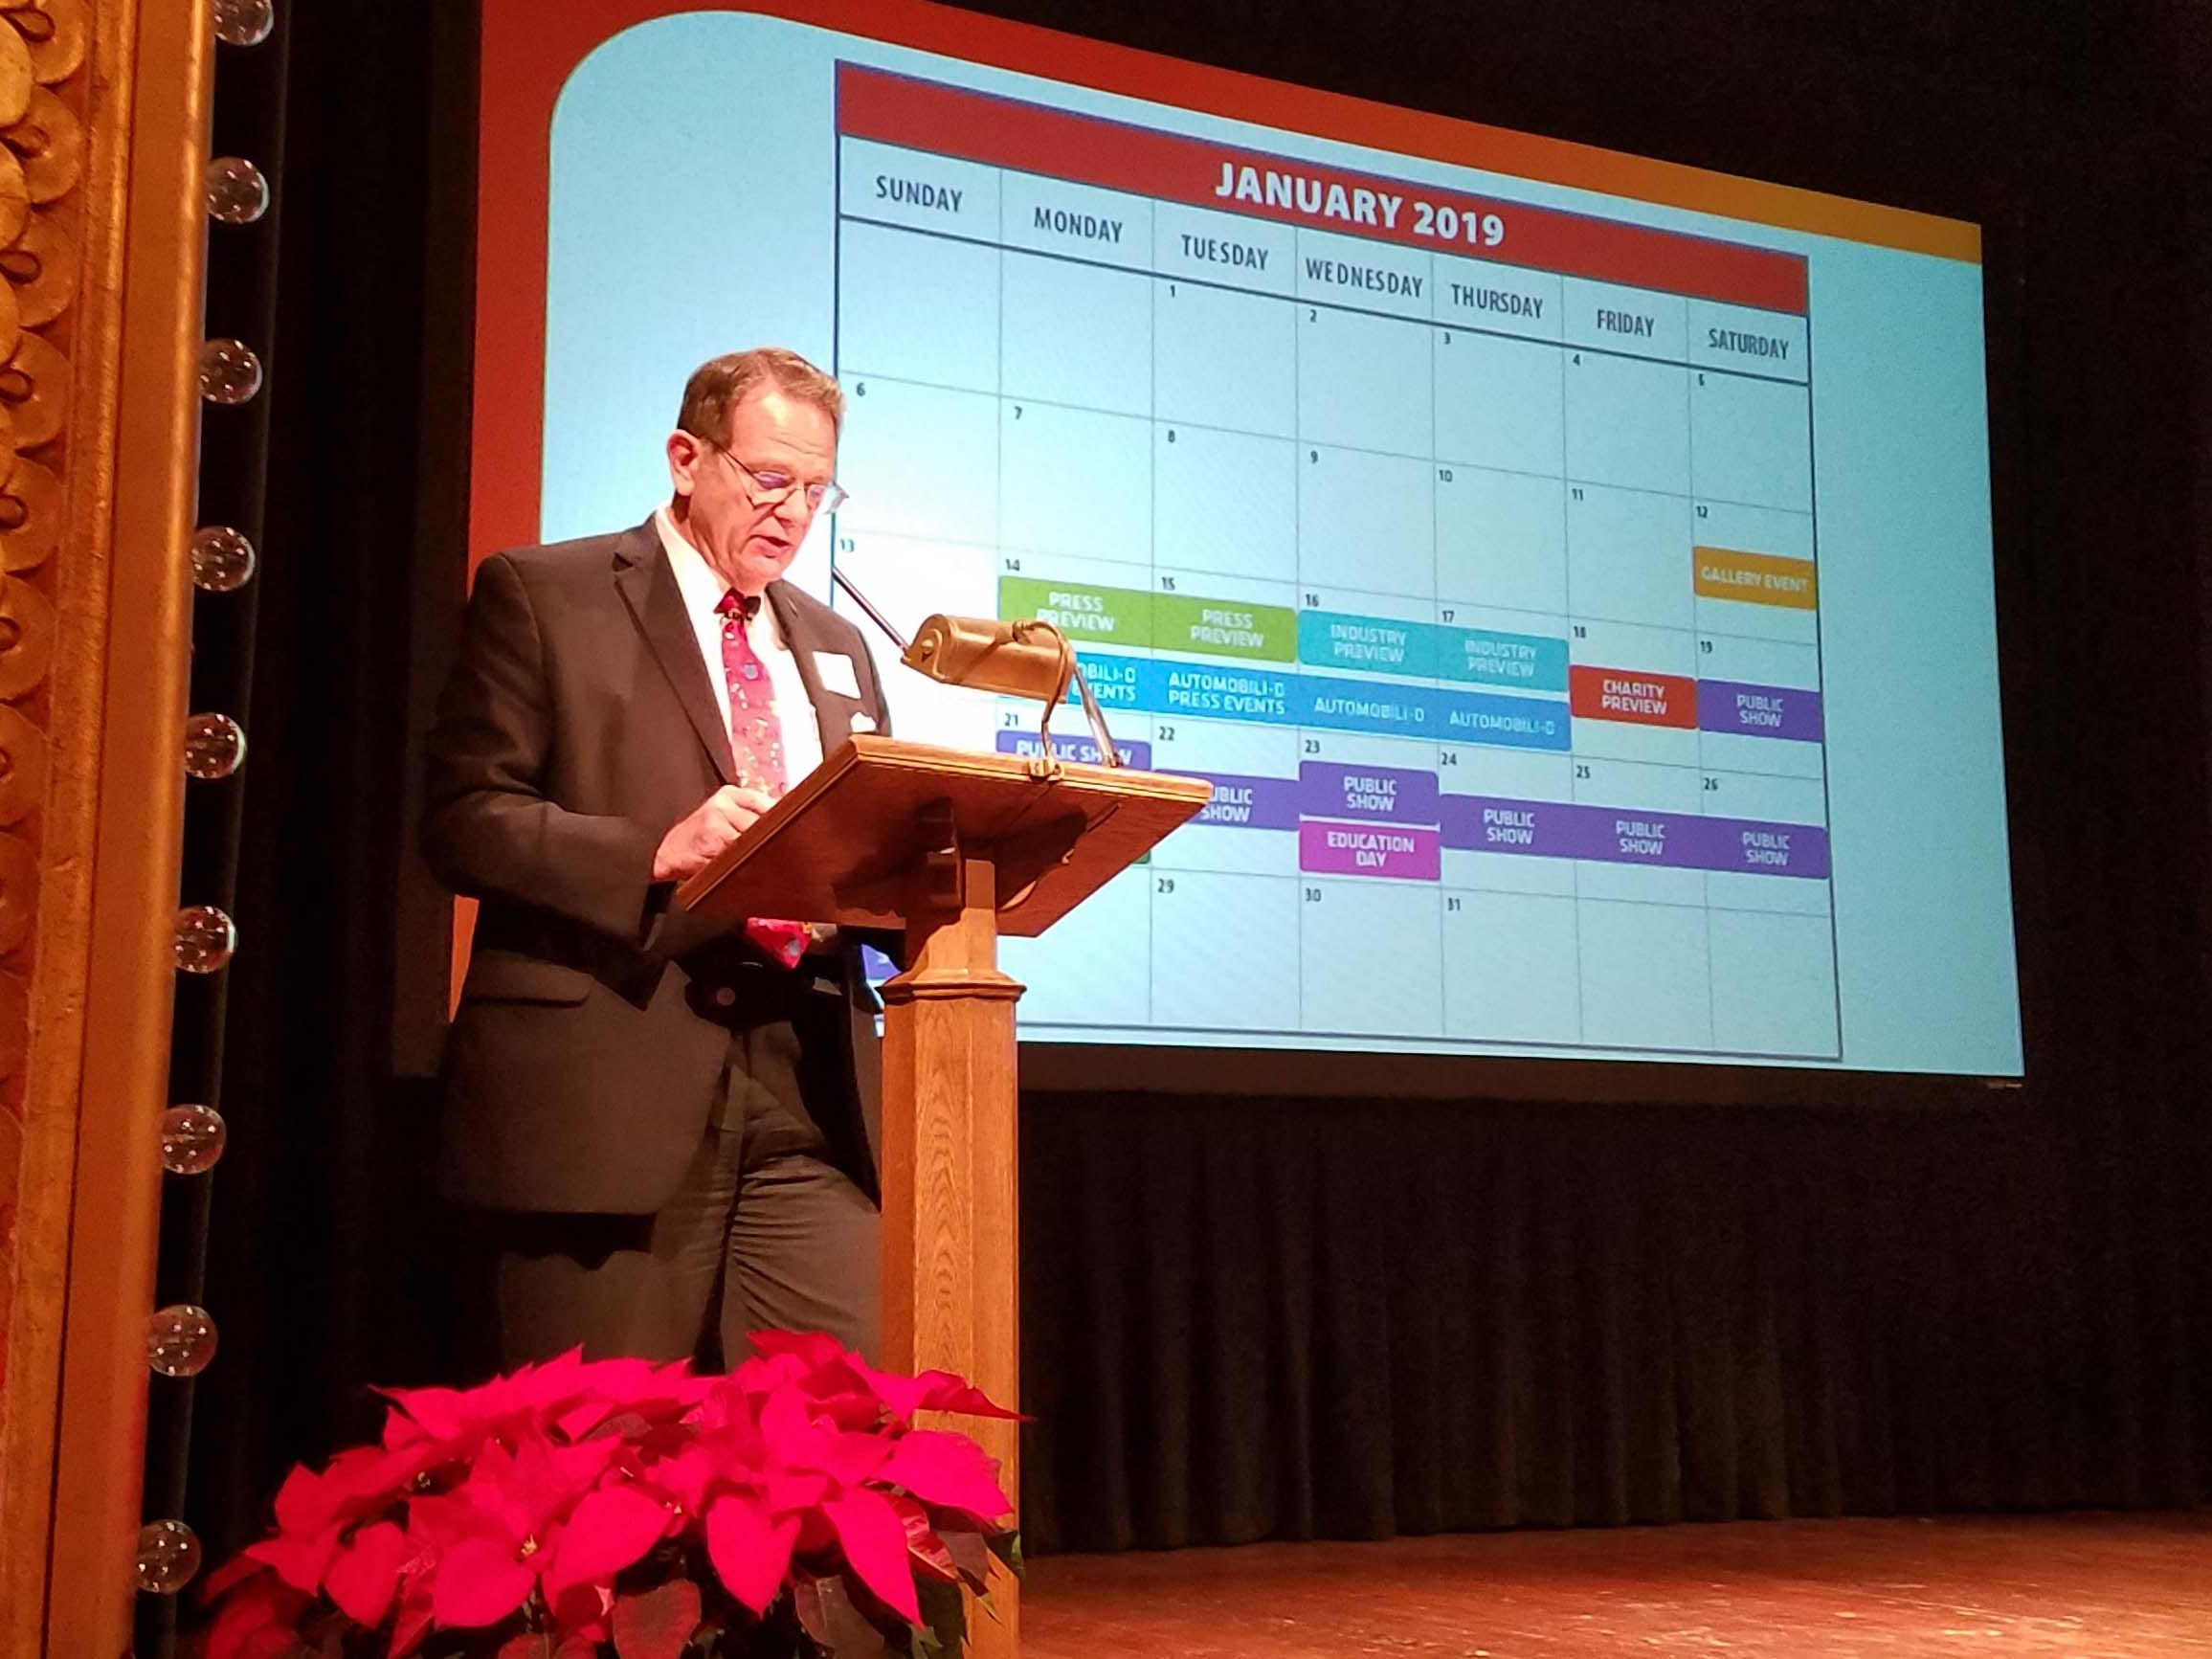 Bill Golling, 2019 chairman of the Detroit auto show, shares the calendar for January's show at the Gem Theater Friday.